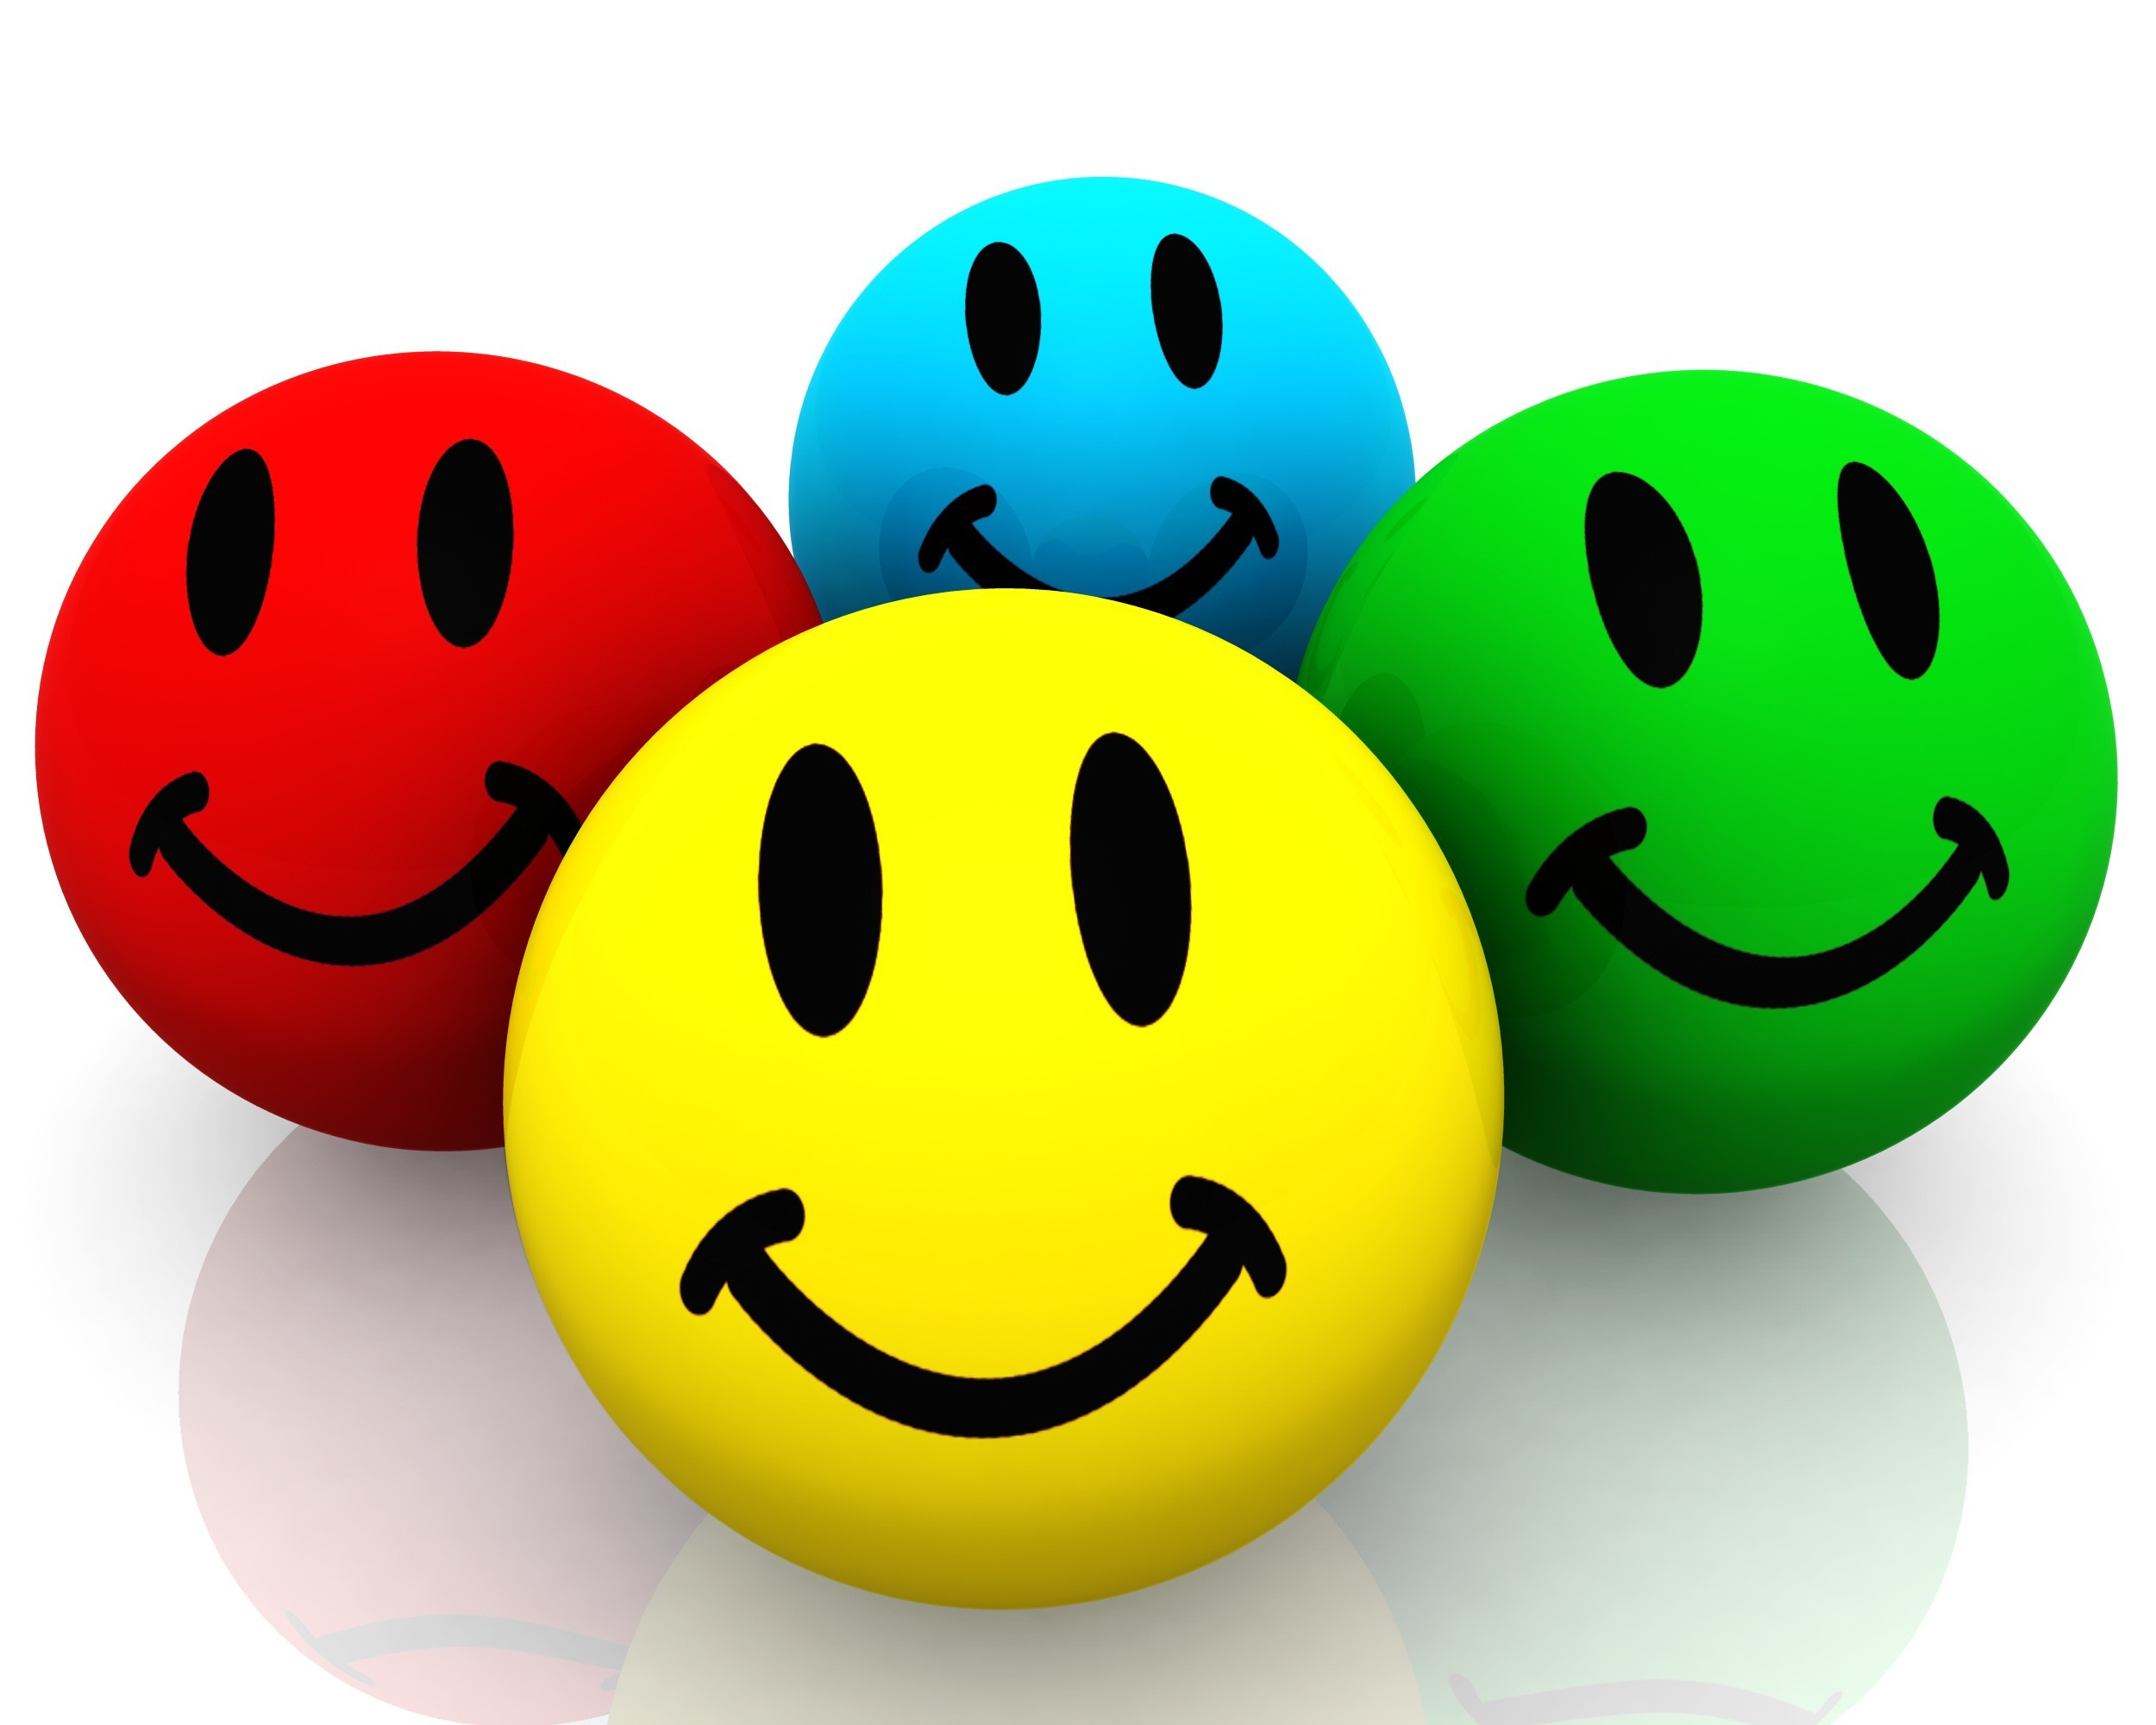 Top 20 Smiley Face Wallpaper: Colorful Smiley Faces Backgrounds